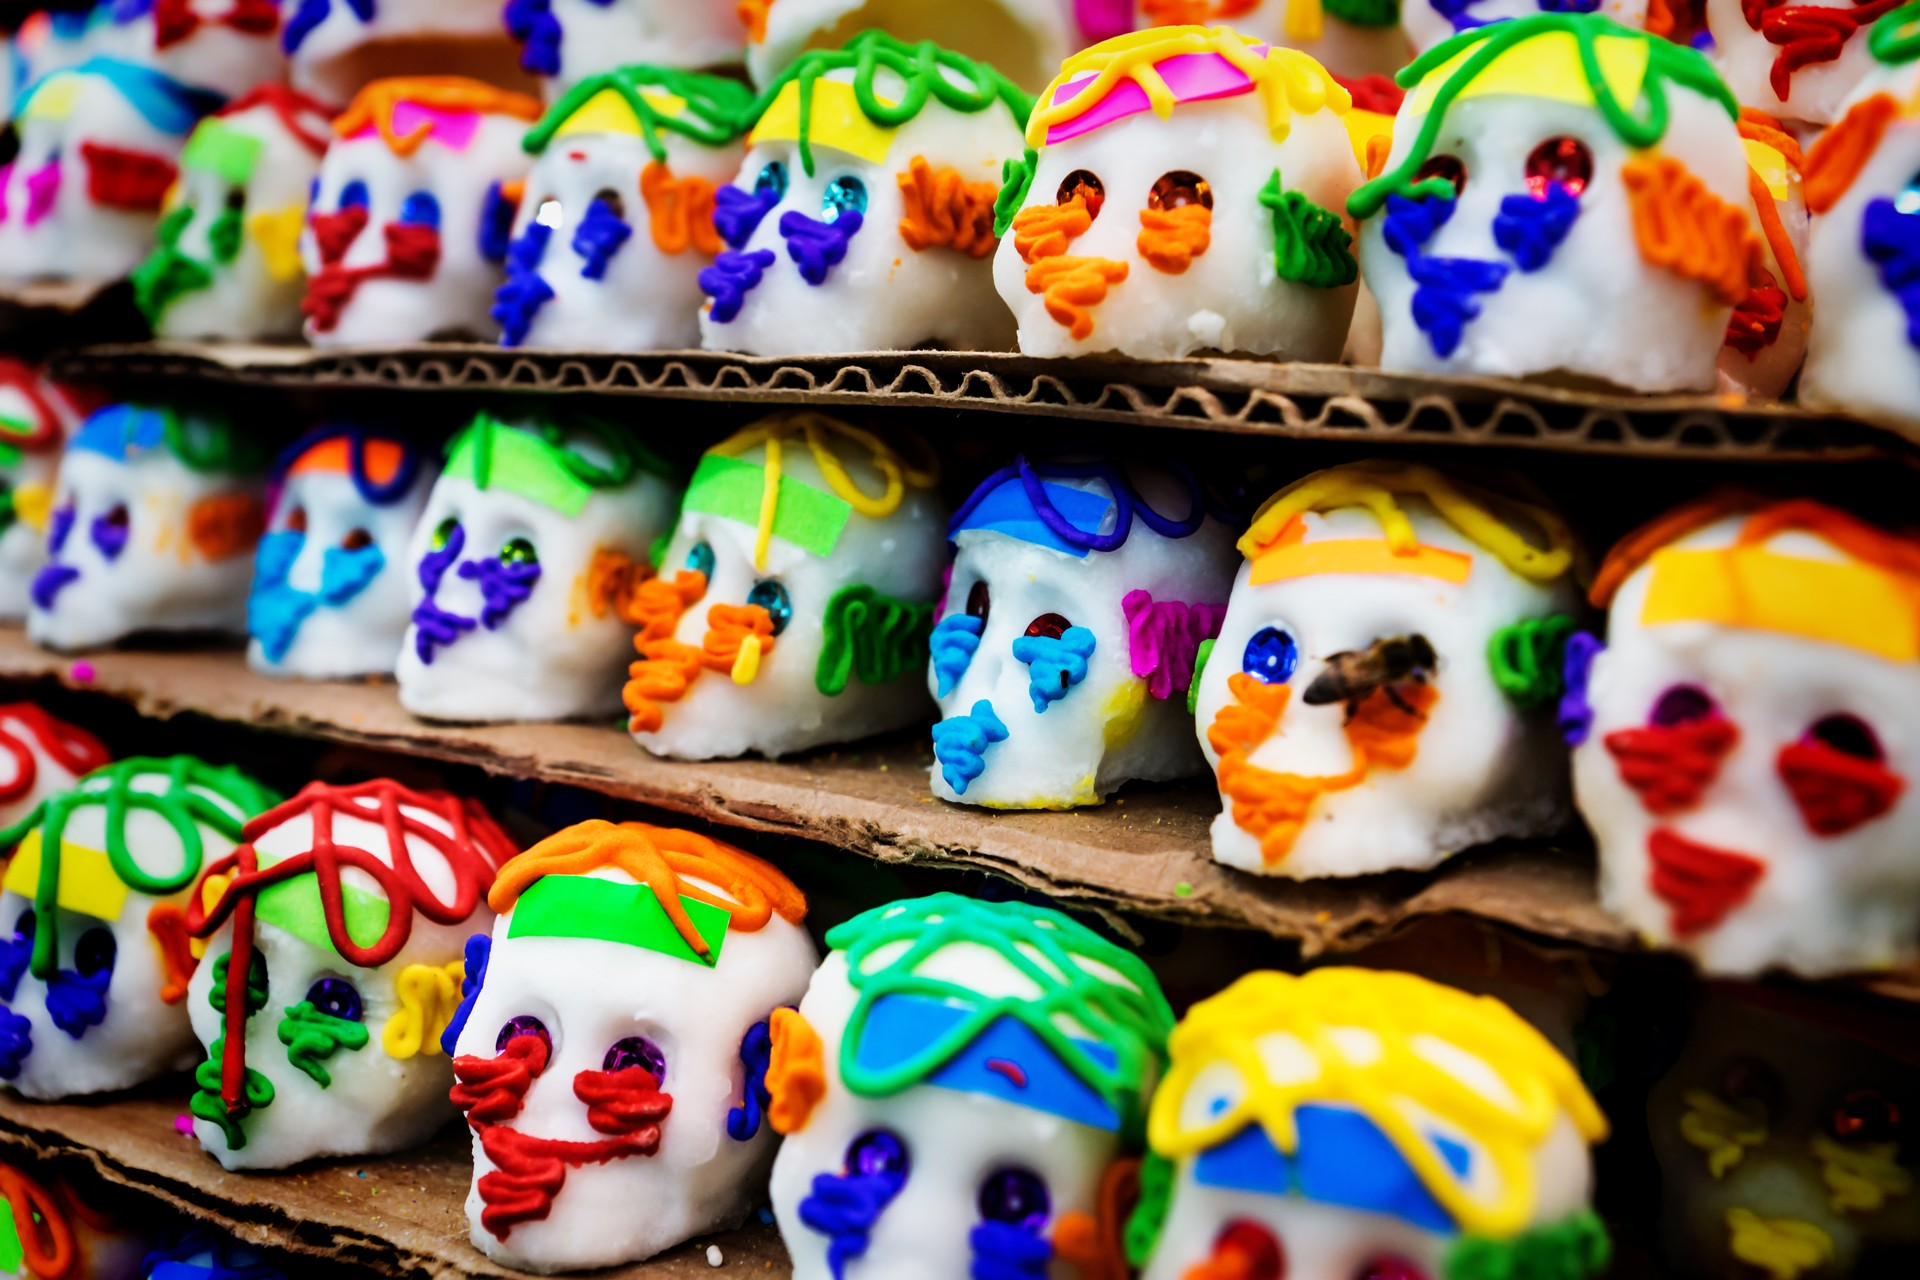 How to experience Mexico's famous Day of the Dead: Merida Candy Skulls